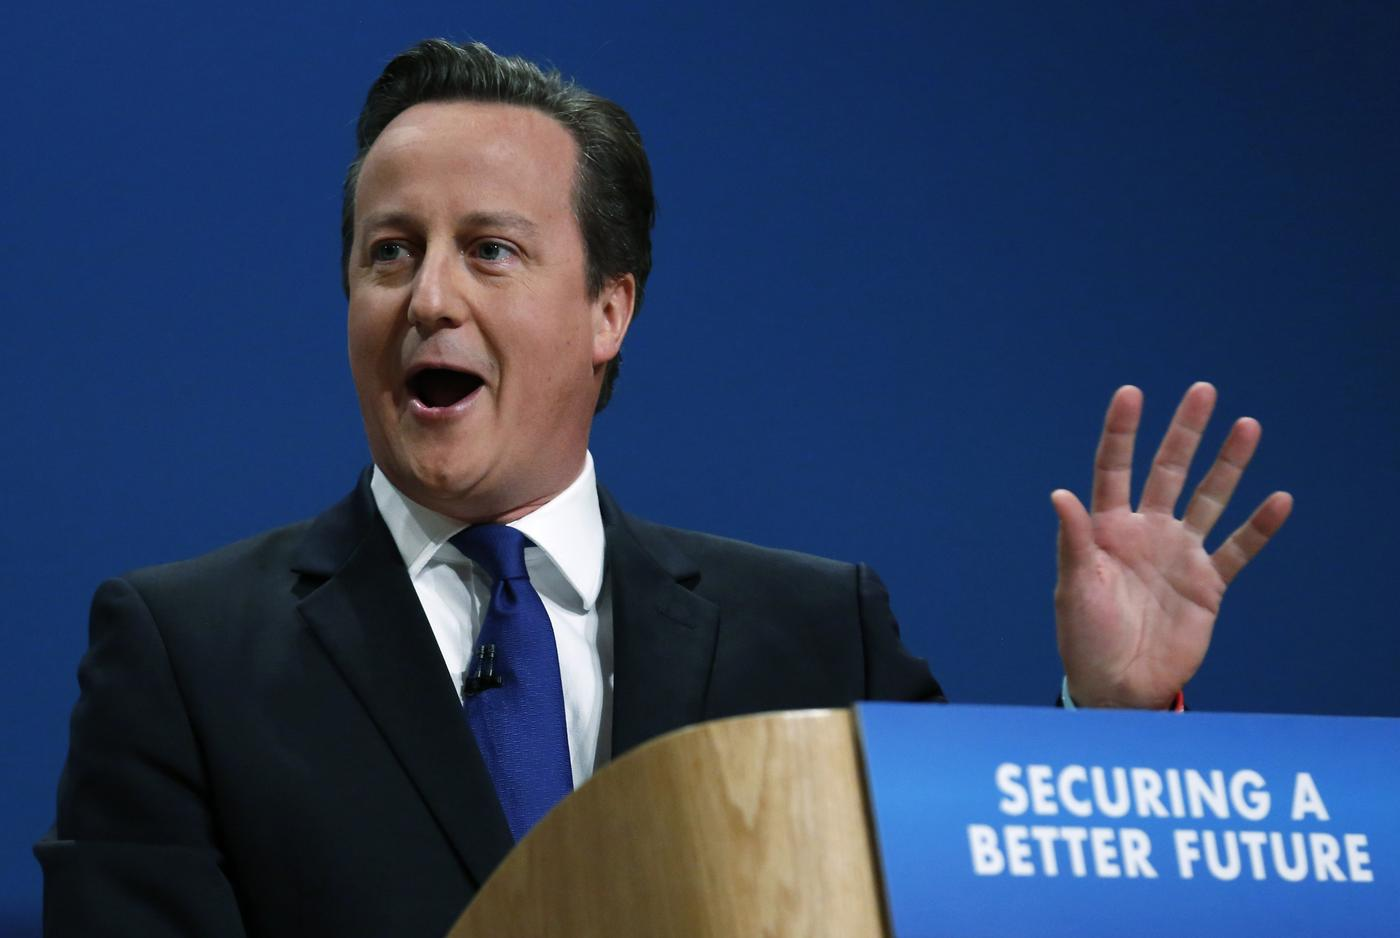 Conservative Party Conference 2014: Was this David Cameron's last leader's speech?